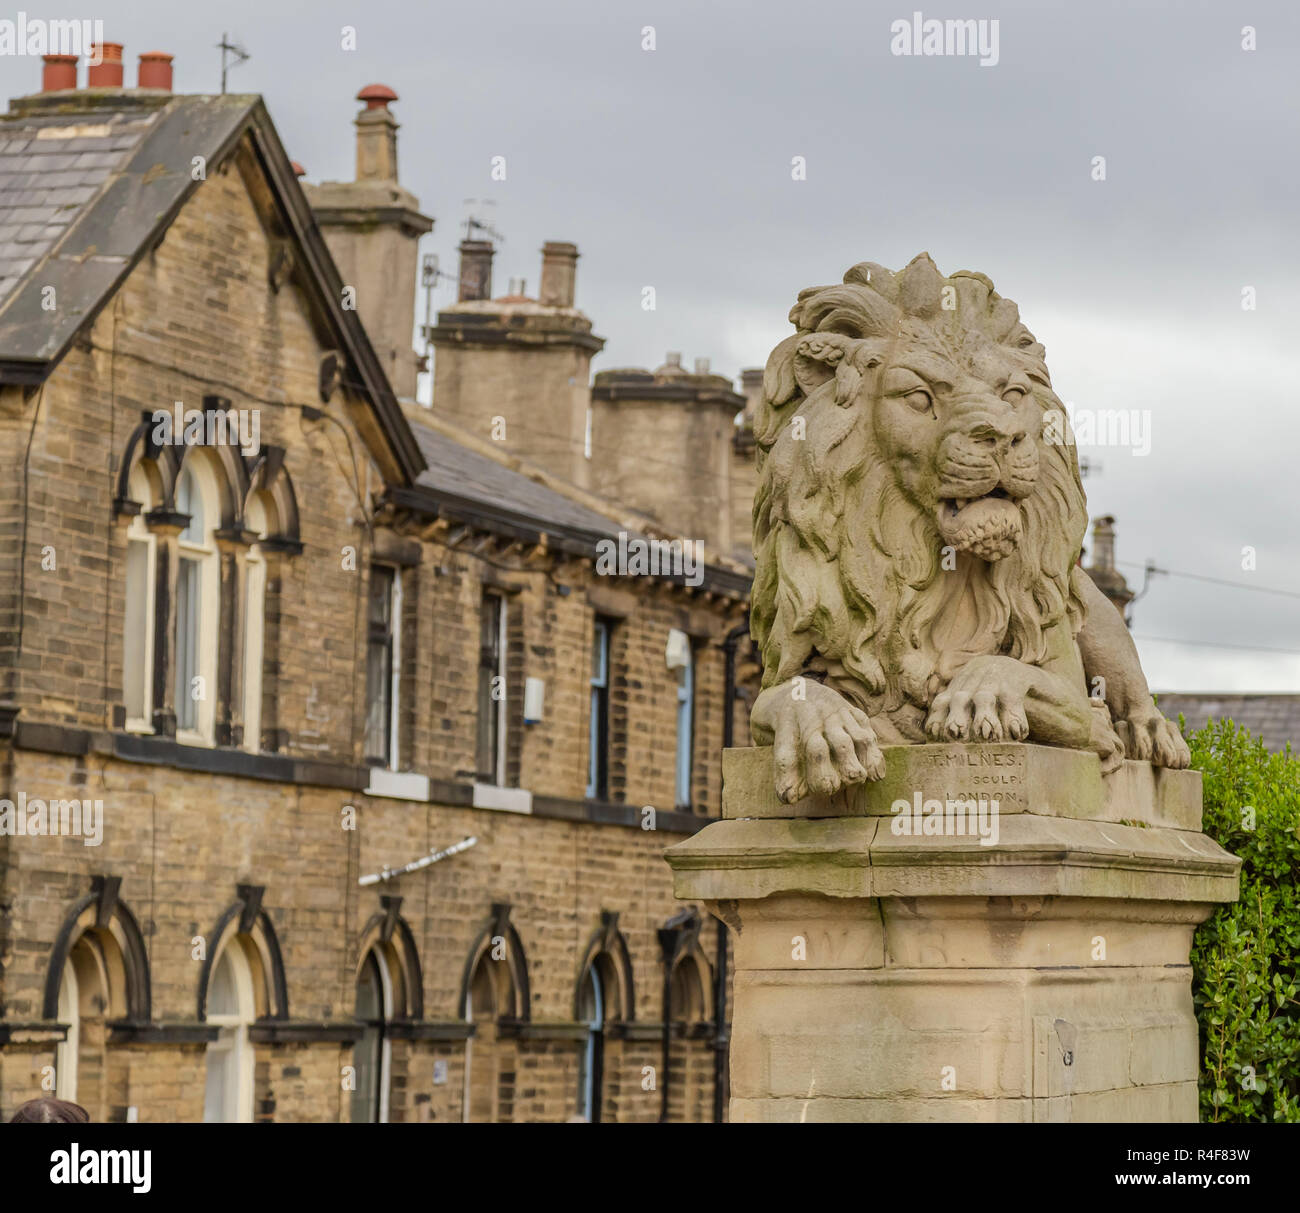 One of the Saltaire stone lions by Sculpture Thomas Milne. This one is named 'War'. - Stock Image